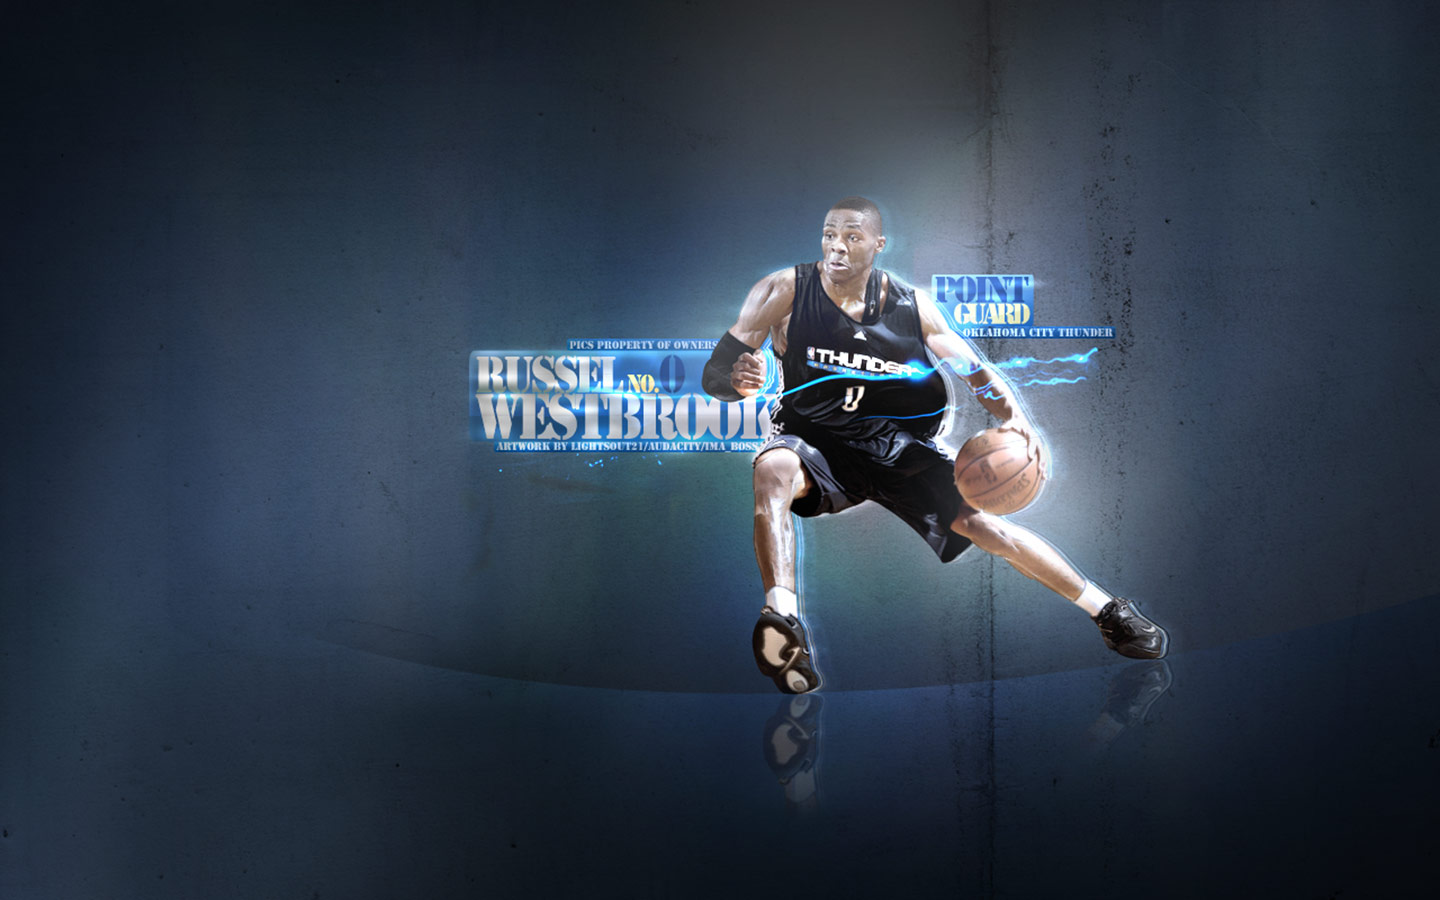 Kevin Durant And Russell Westbrook Wallpapers Wallpaper  1440x900